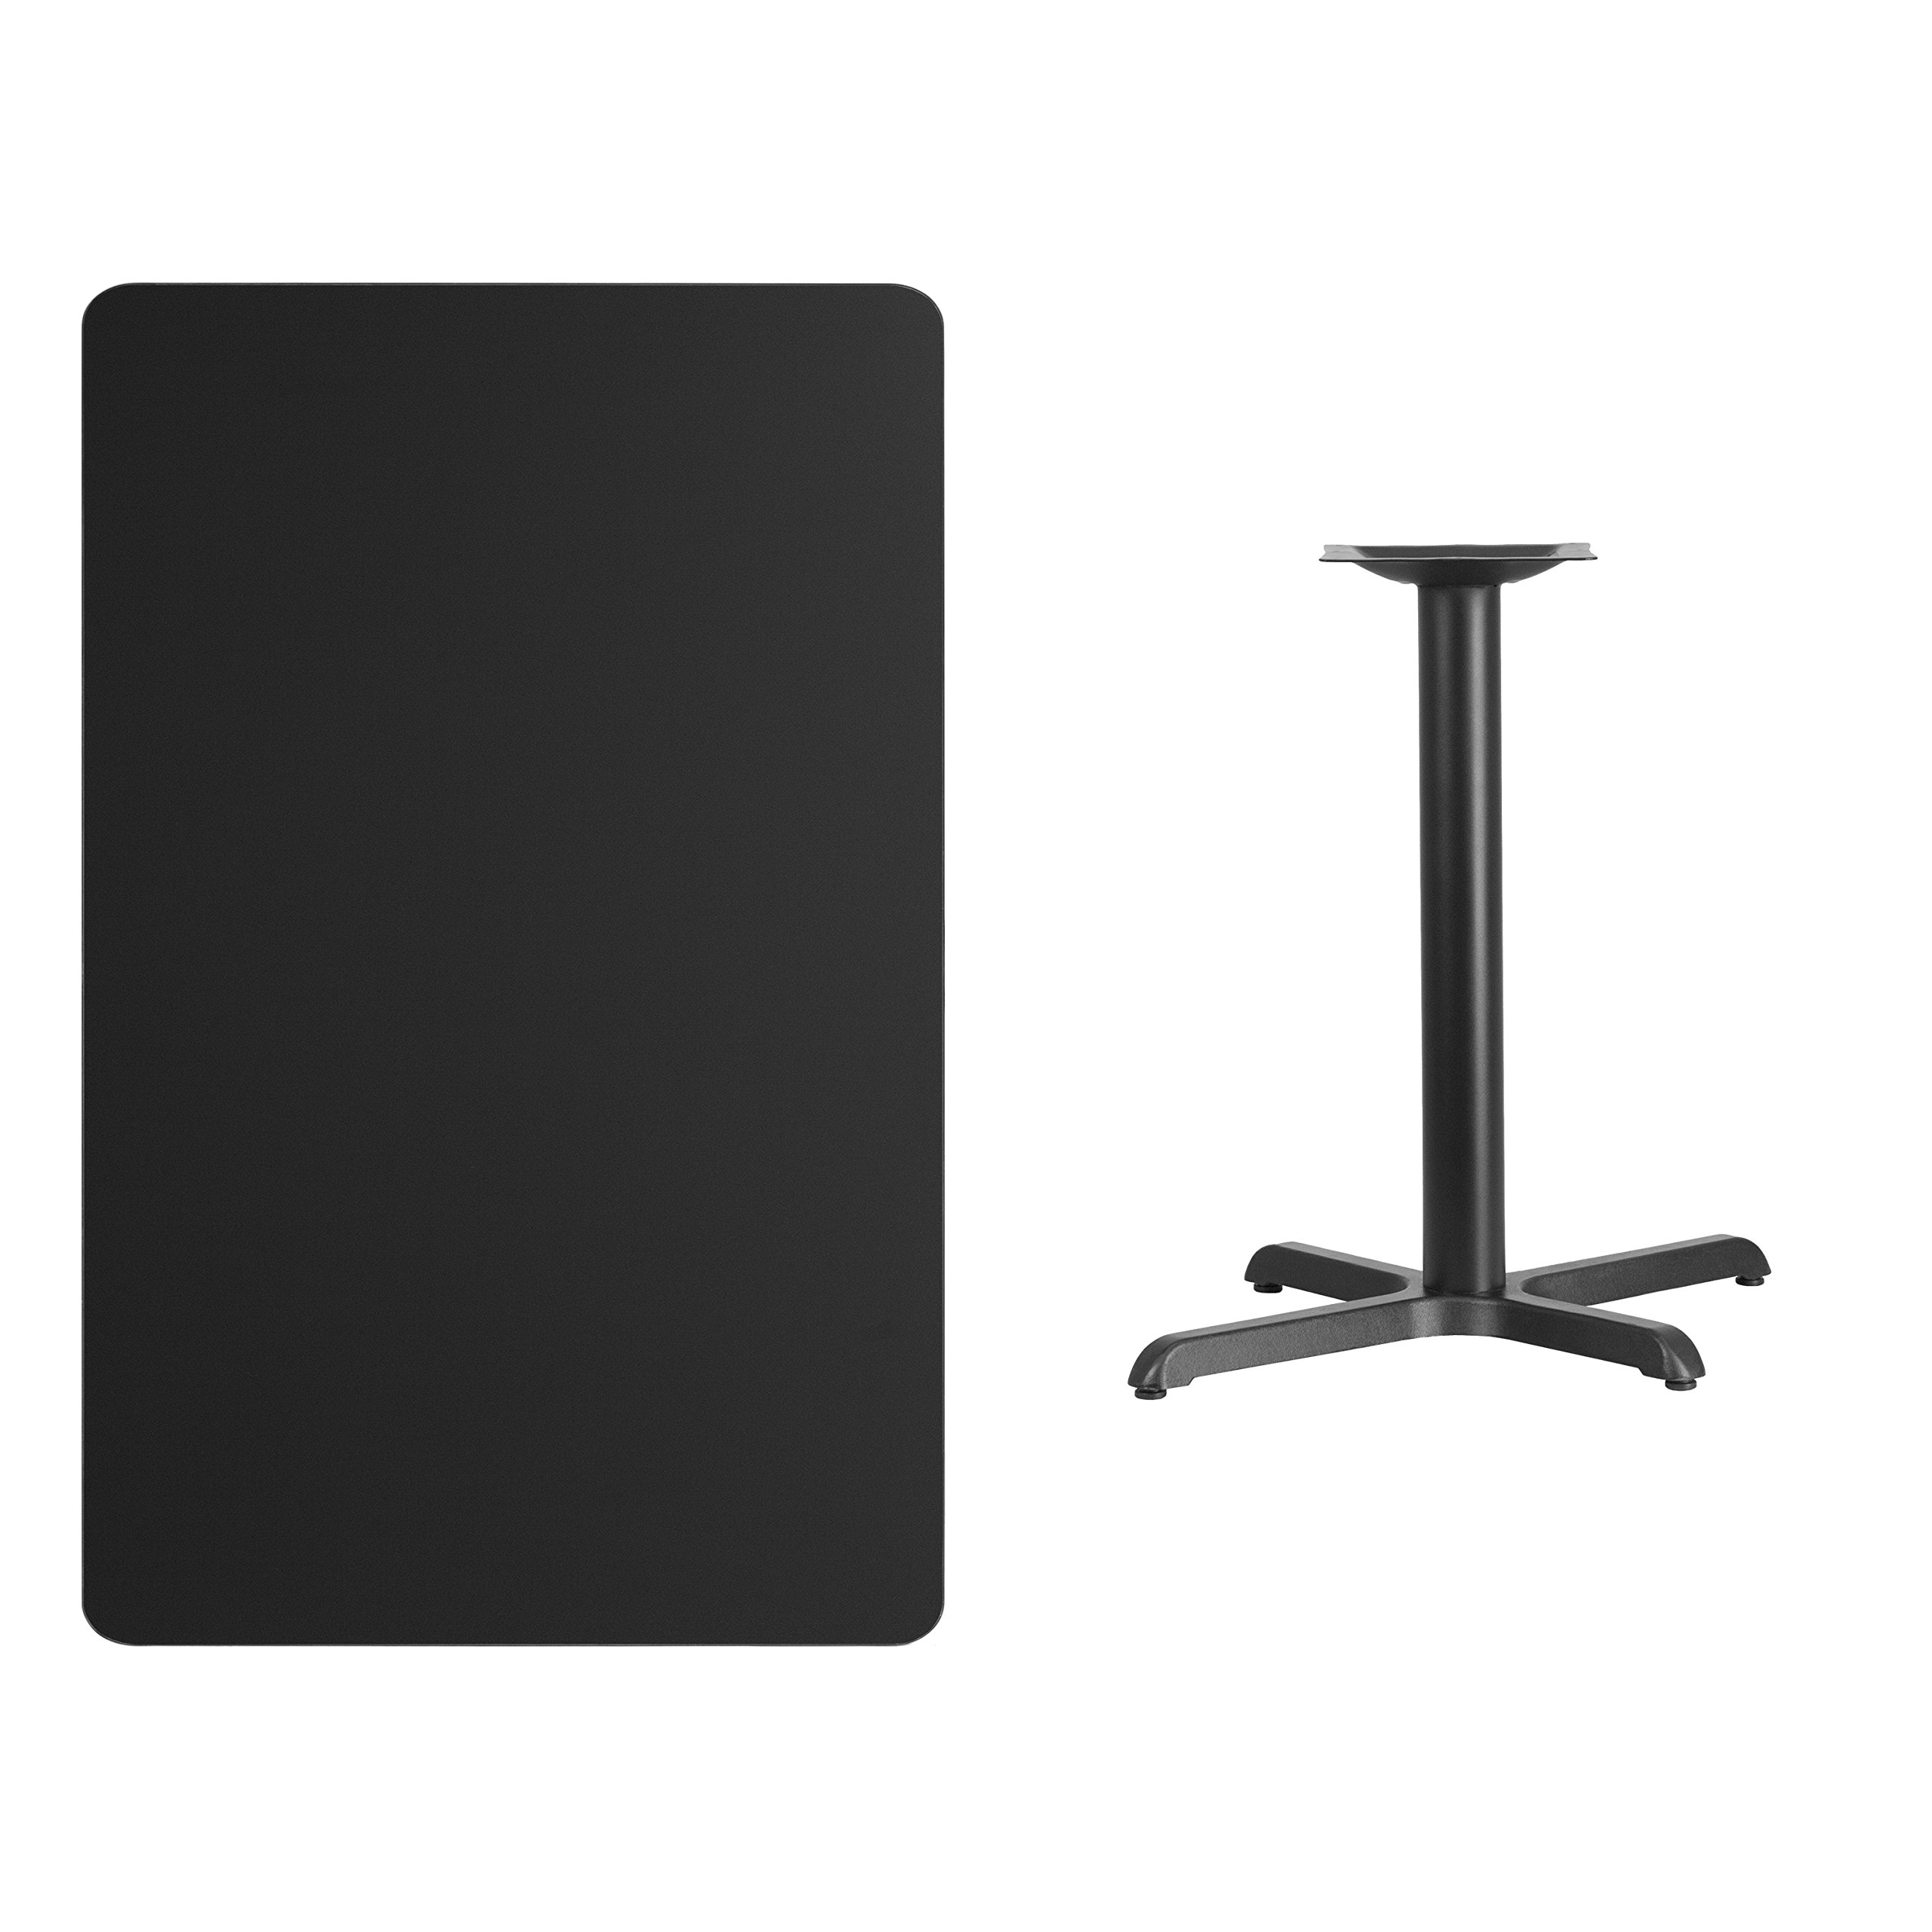 My Friendly Office MFO 30'' x 48'' Rectangular Black Laminate Table Top with 22'' x 30'' Table Height Base by My Friendly Office